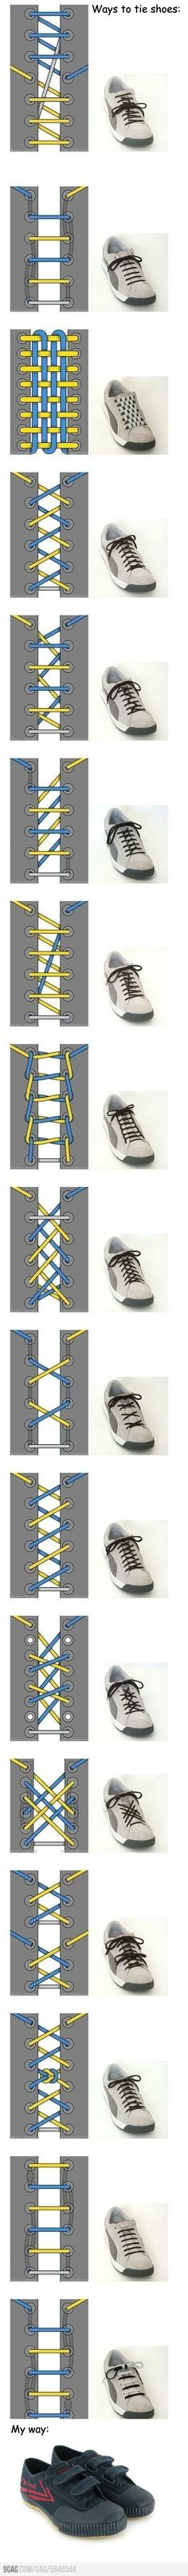 Ways to tie shoes- some are stupid but some are really cool! I love the woven one!